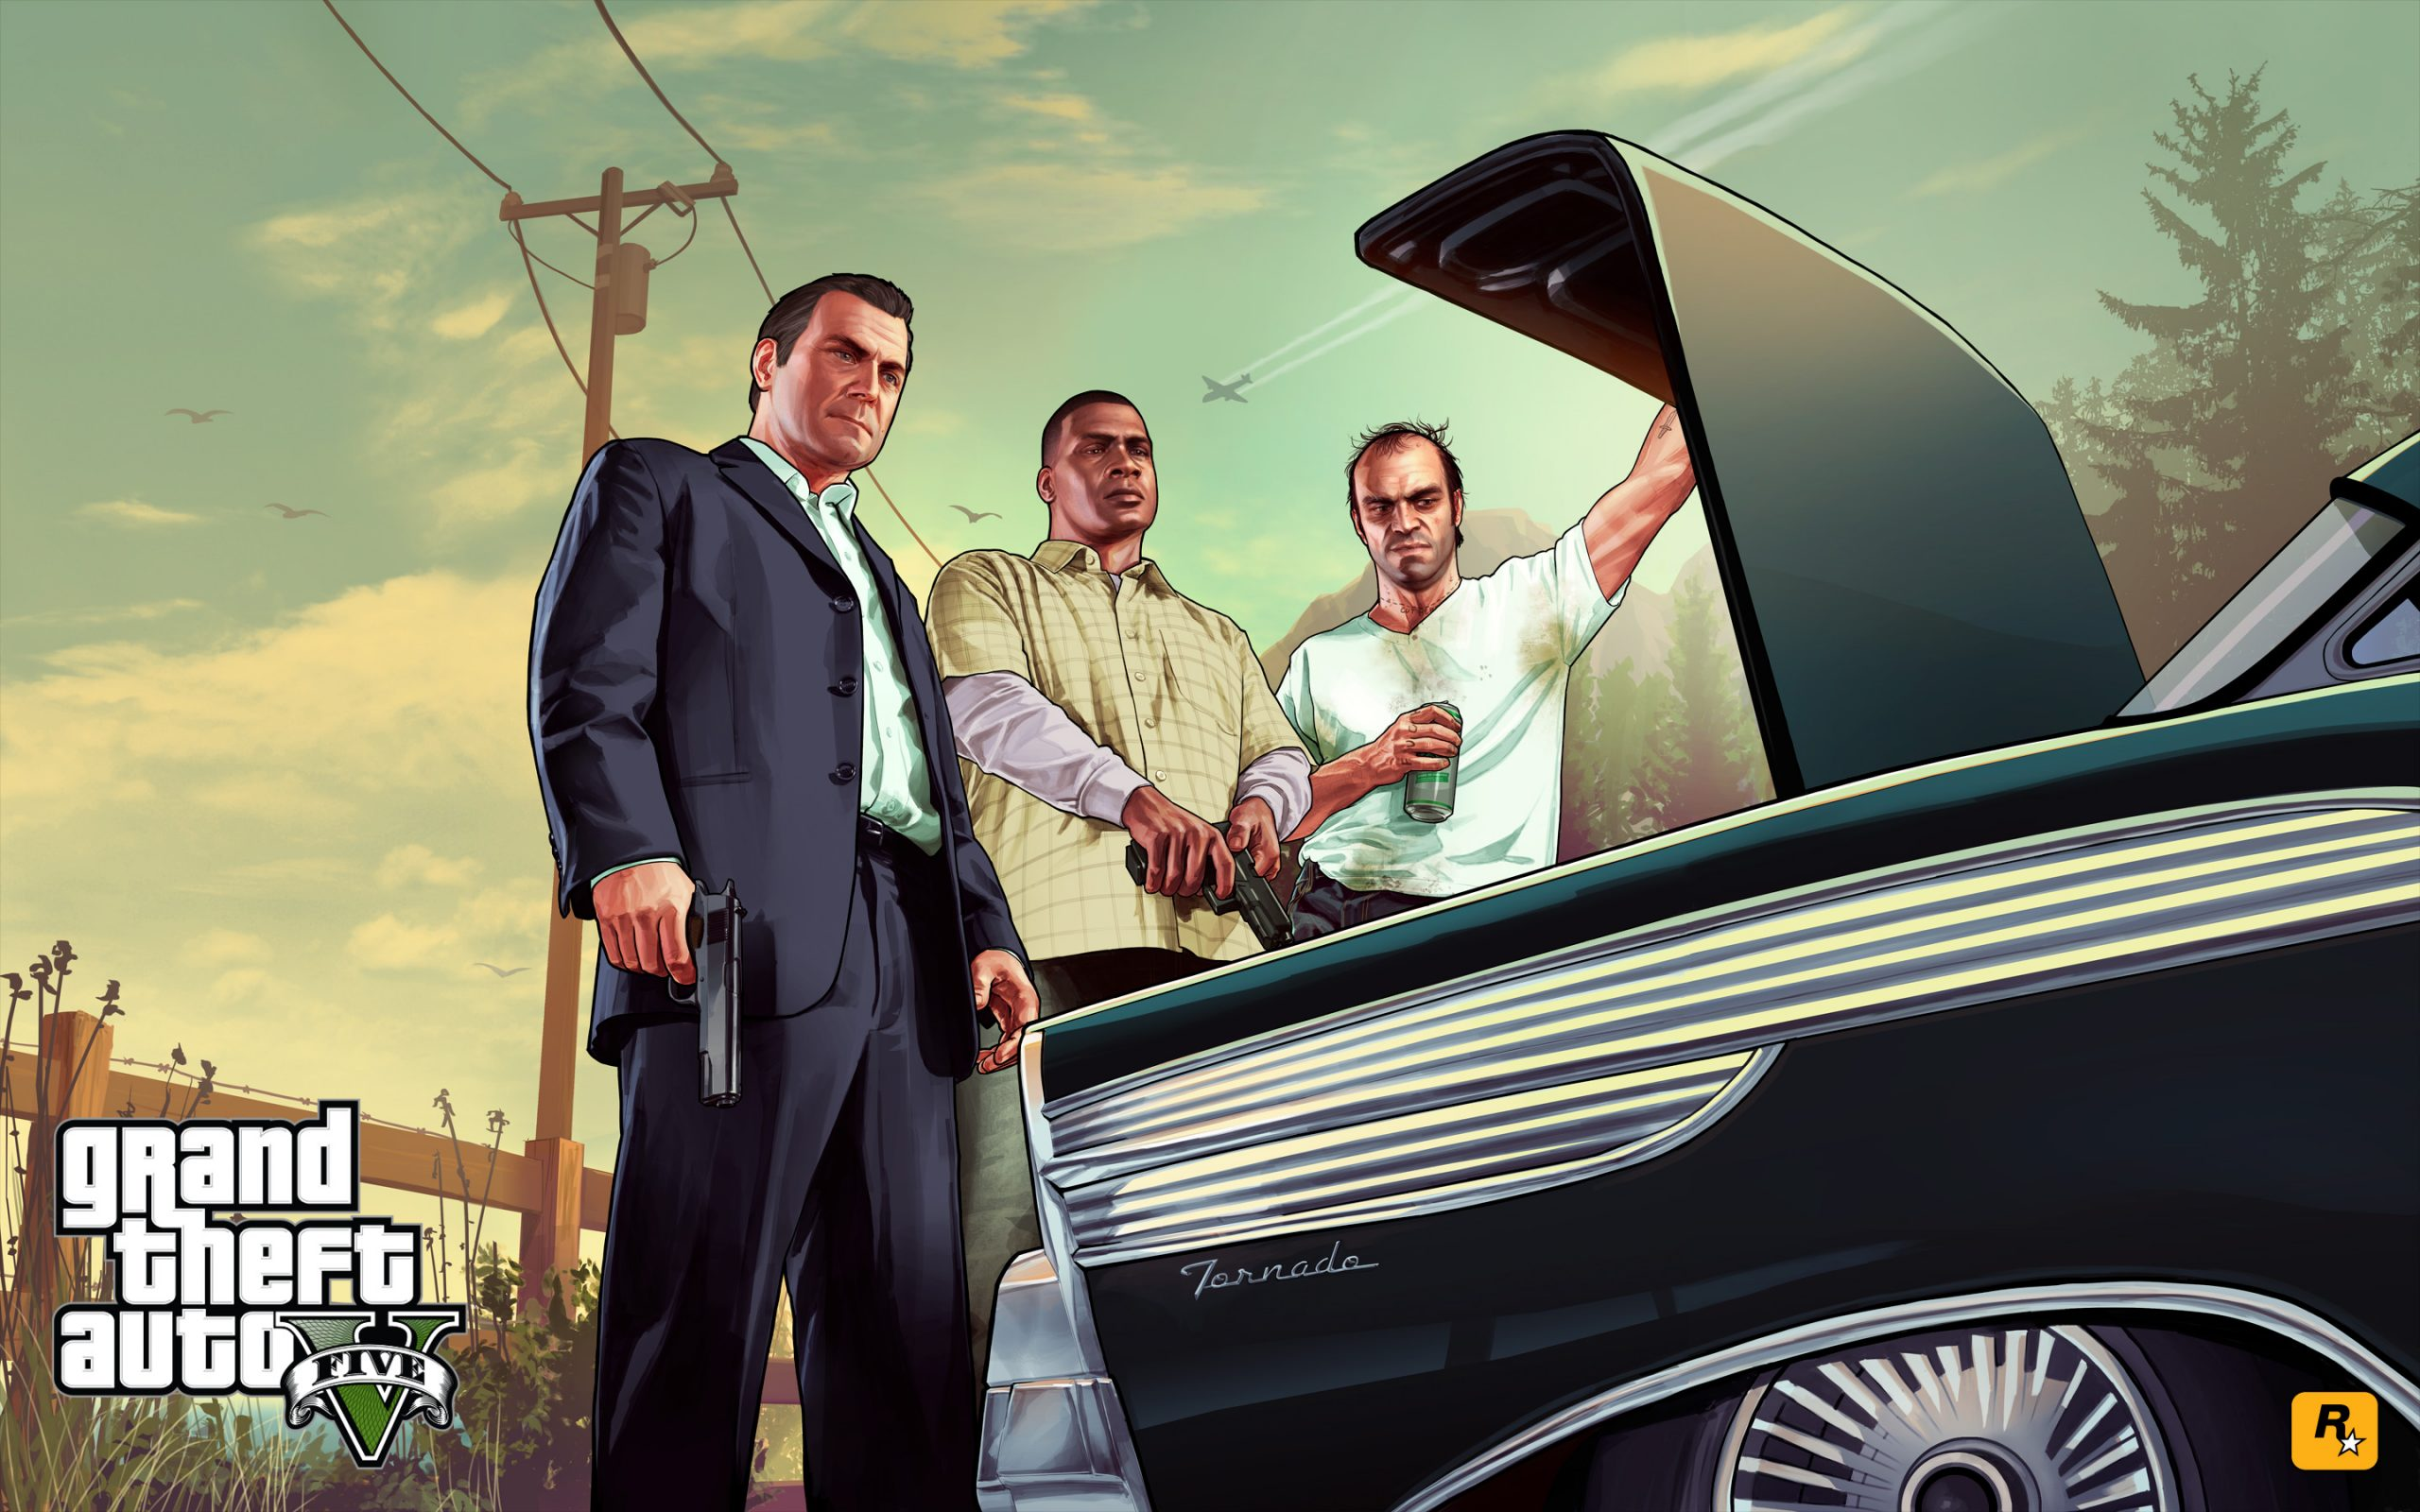 GTA Vice City Cheat Code: PC, Play Station, And Much More